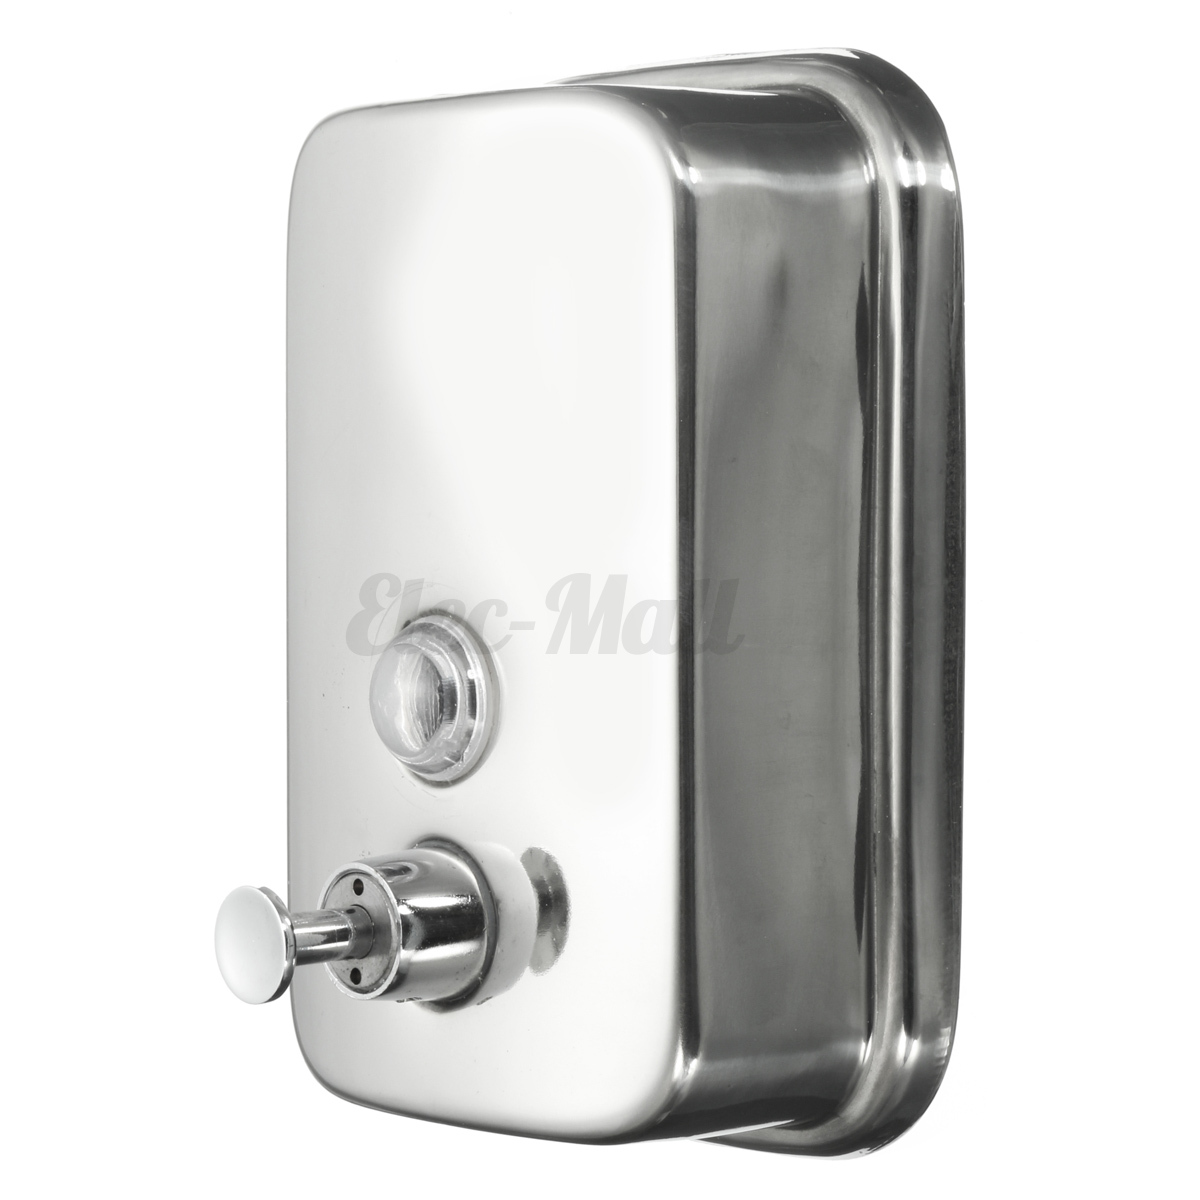 Soap Dispenser Holder Wall Mounted Stainless Steel Wall Mount Pump Action Liquid Shampoo Box